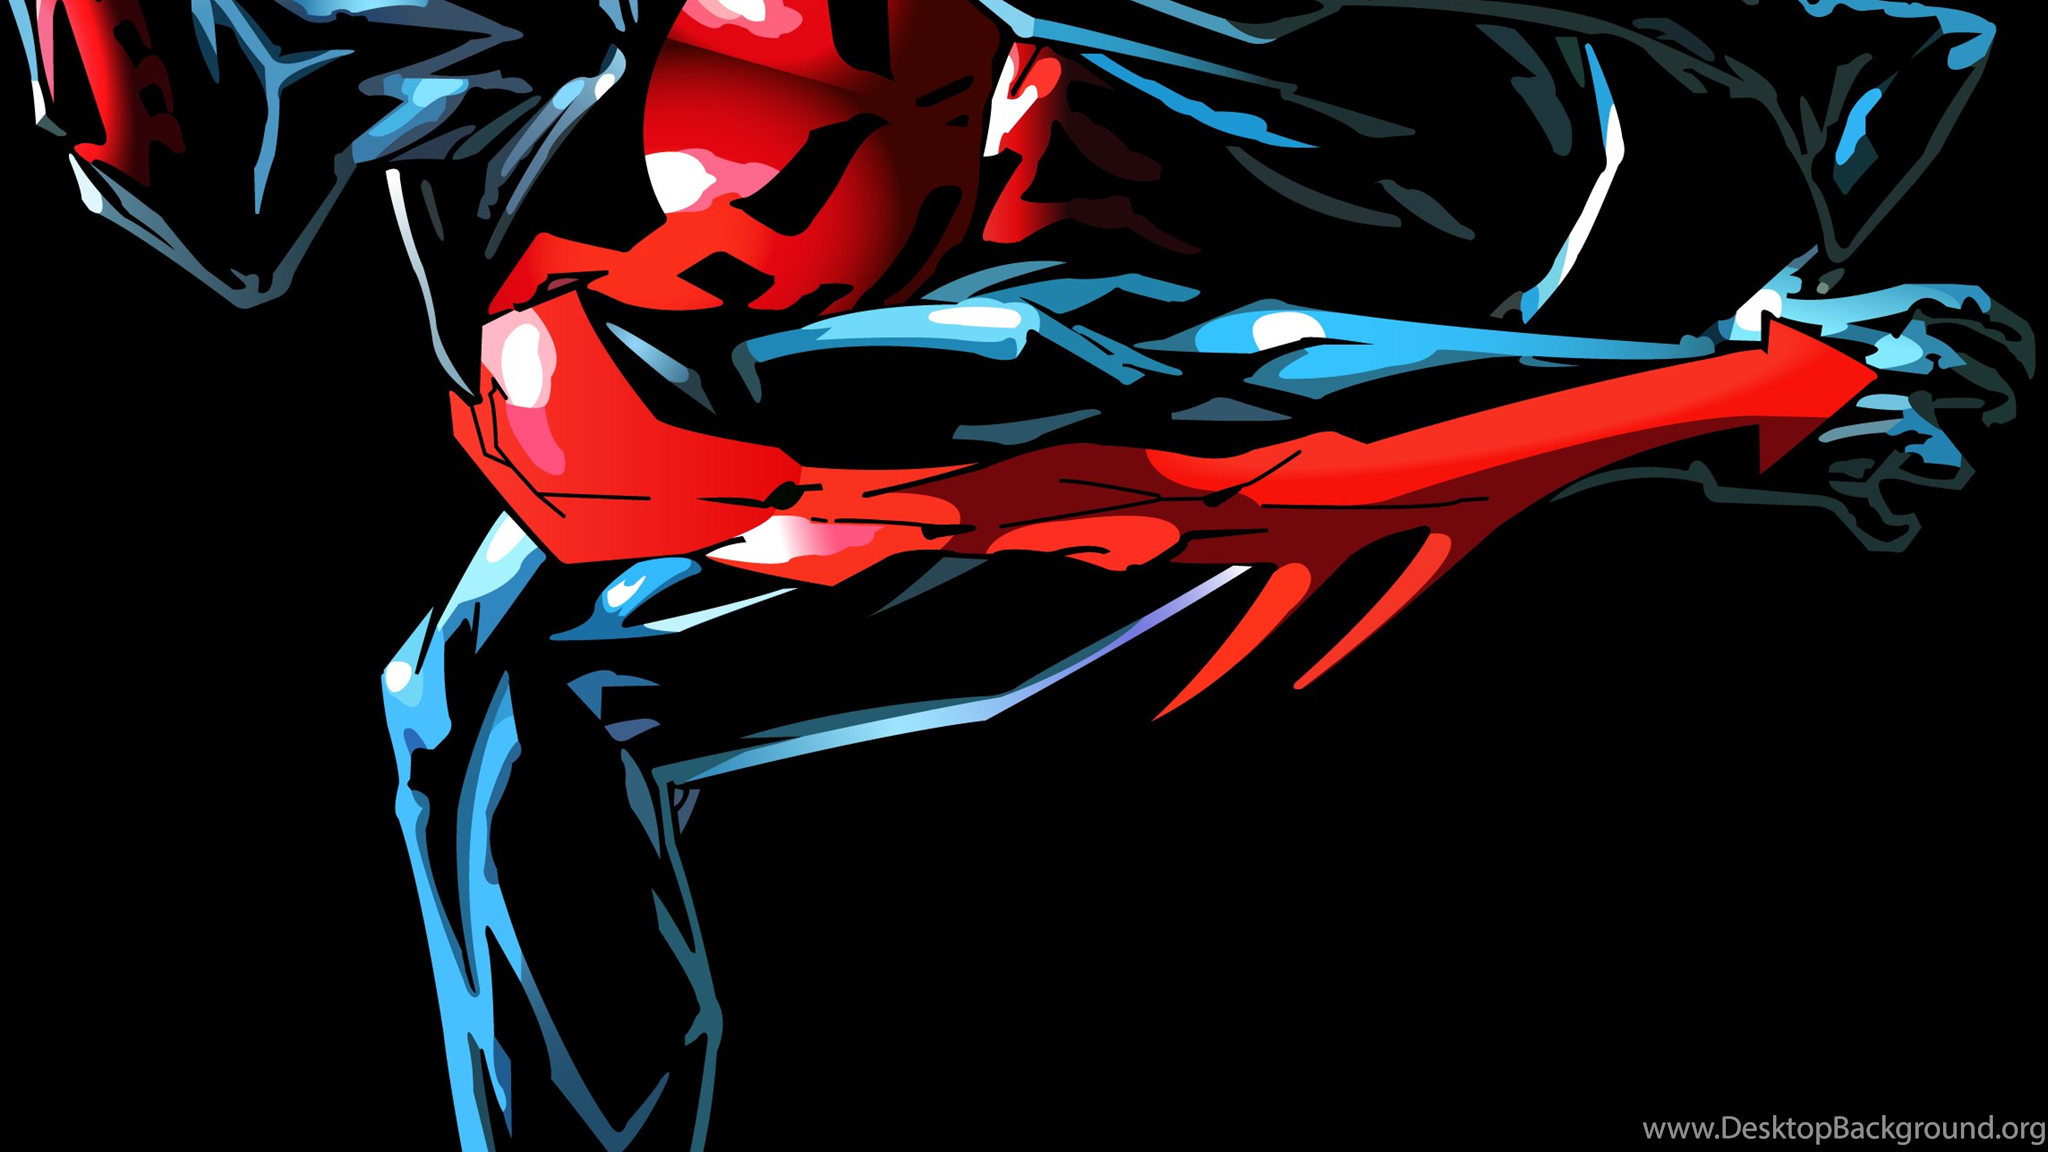 Spiderman 2099 Wallpapers Hd Desktop 13290 Hd Wallpapers Site